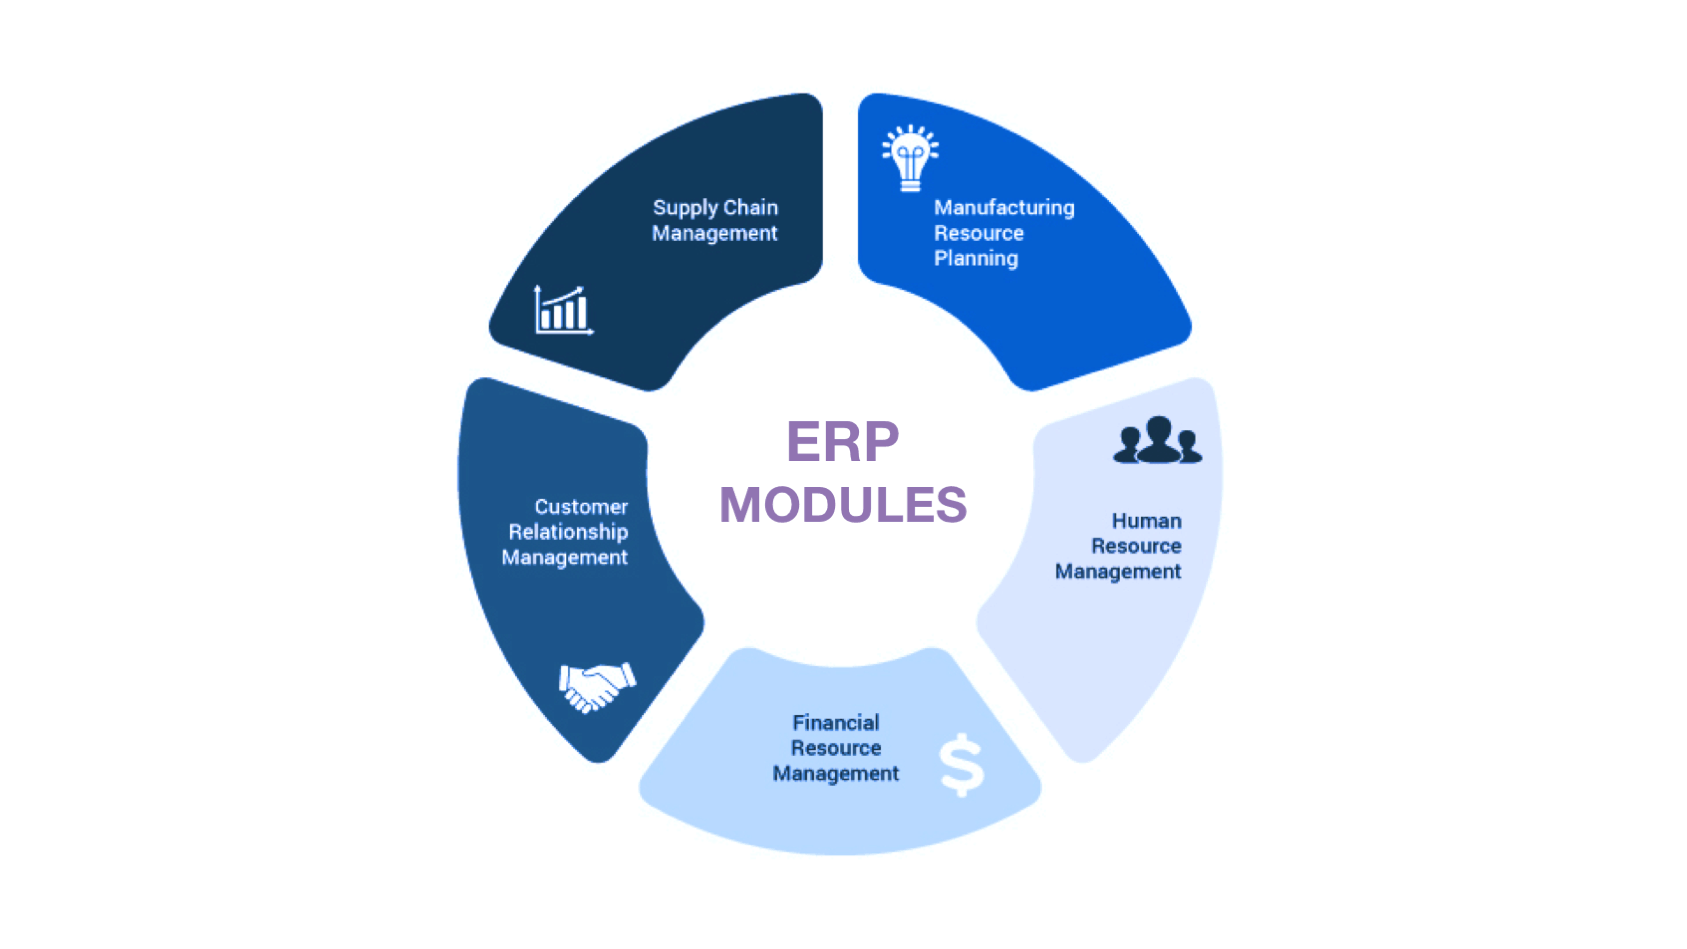 erp supply chain management The role of enterprise resource planning in supply chain management erp is basically software that is now being used by multiple businesses to manage their accounts this is used by several schools, colleges, hospitals, hotels etc, to name a few of them.